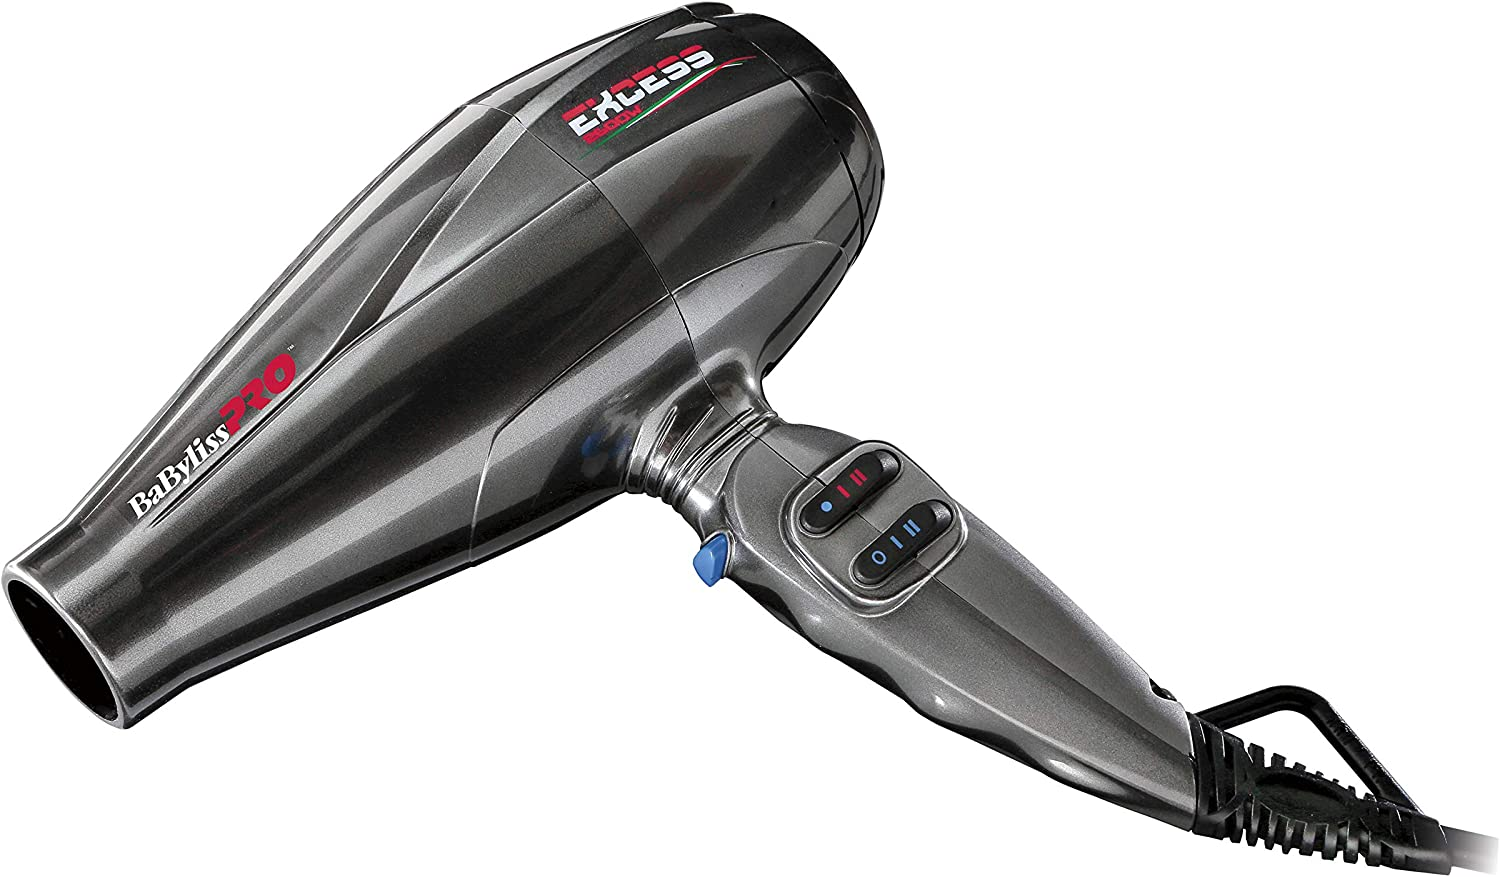 Sèche cheveux Babyliss Pro Excess 2600 Watts